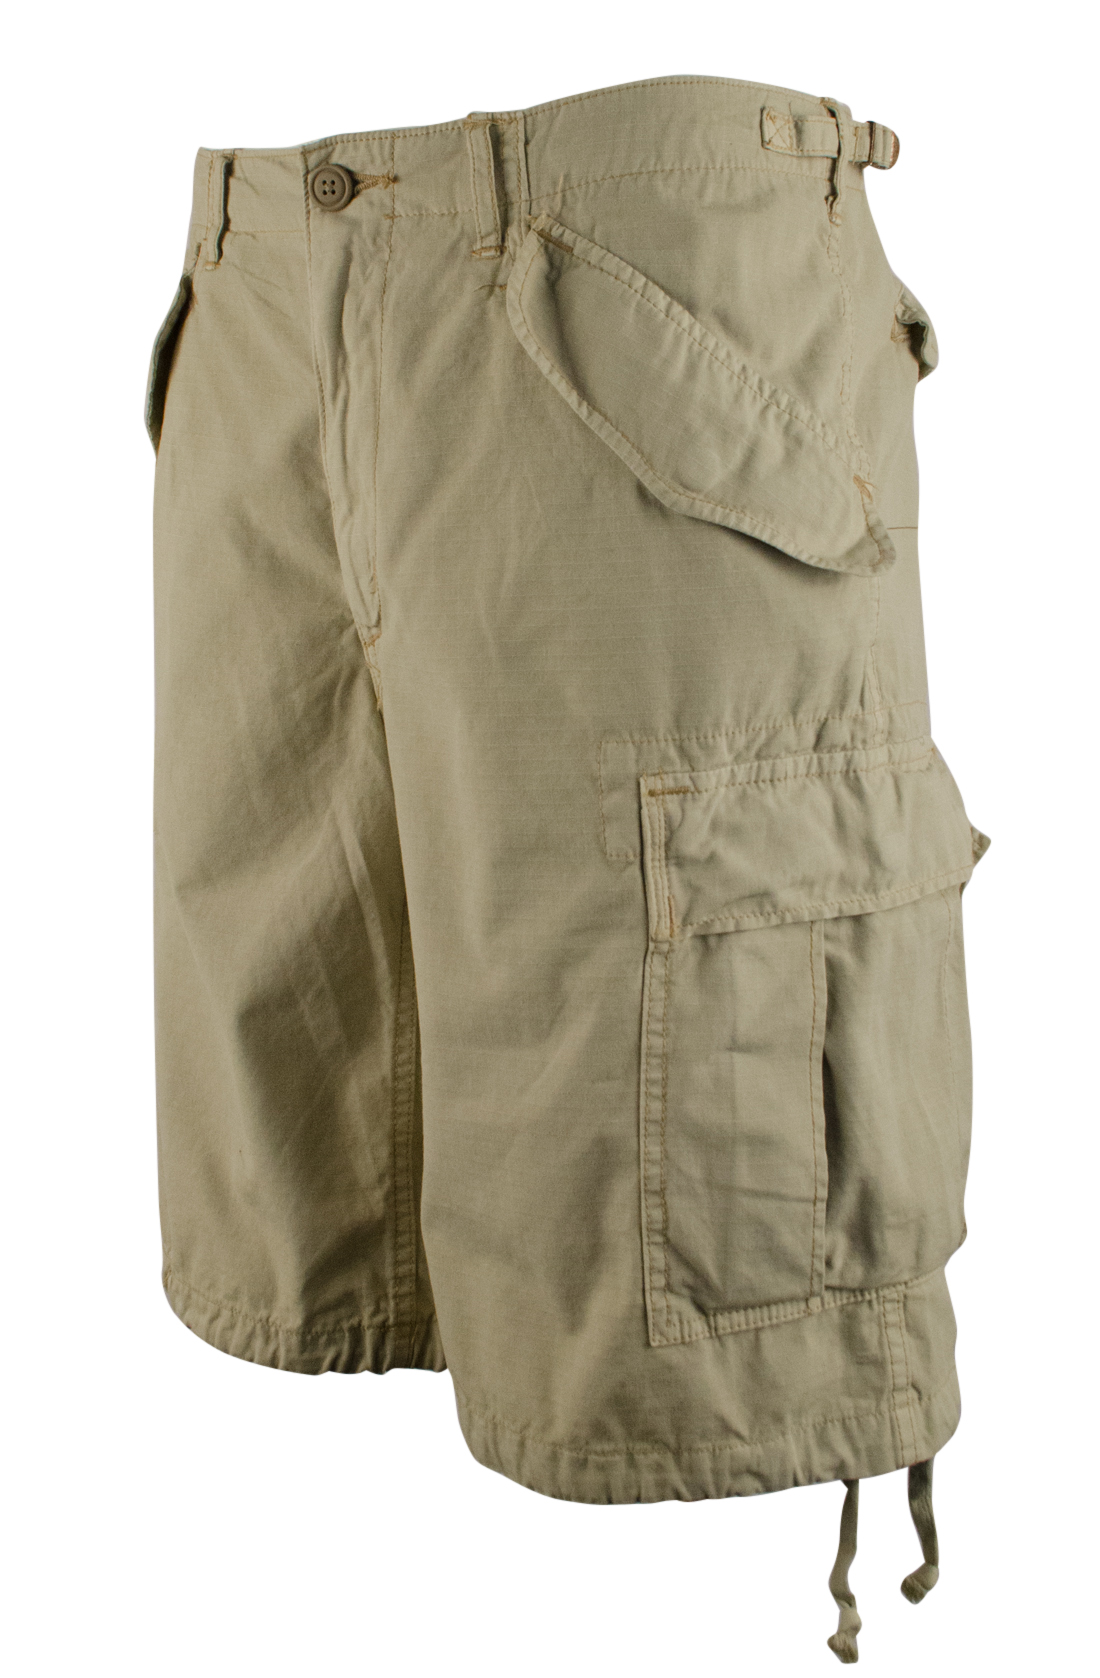 Men's big and tall cargo shorts come in a variety of styles, colors, and lengths. The key feature that separates cargo shorts is the pockets. There are typically six pockets, with two in the front, two on the outside of the legs, and two in back to help you keep nails, tools, or your cell phone handy.